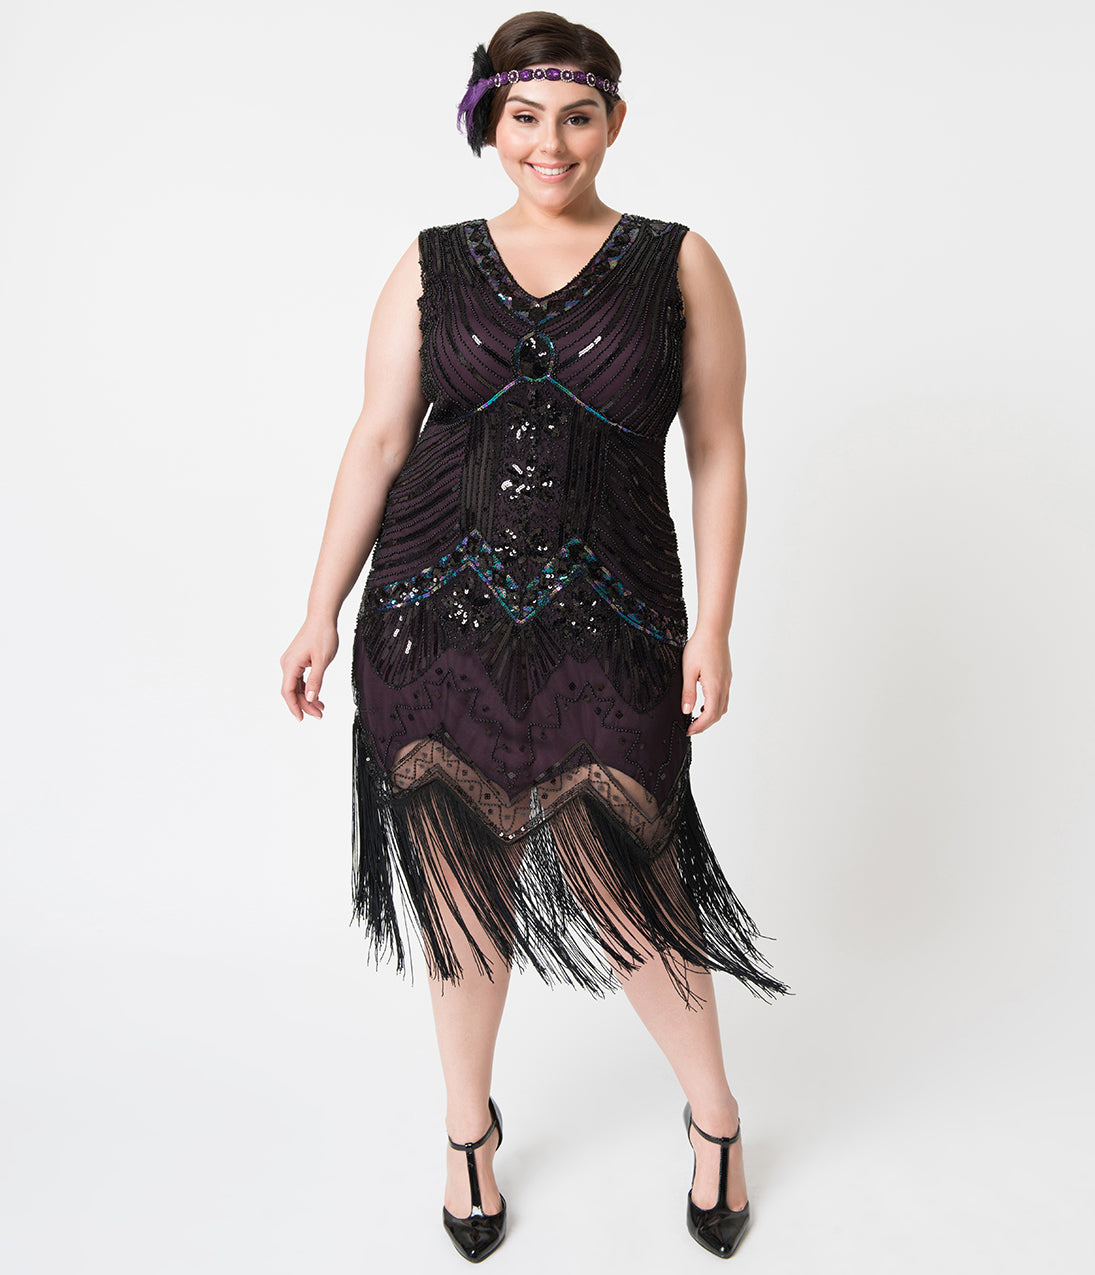 1920s Evening Dresses & Formal Gowns Unique Vintage Plus Size 1920S Deco Purple  Black Sequin Veronique Fringe Flapper Dress $98.00 AT vintagedancer.com